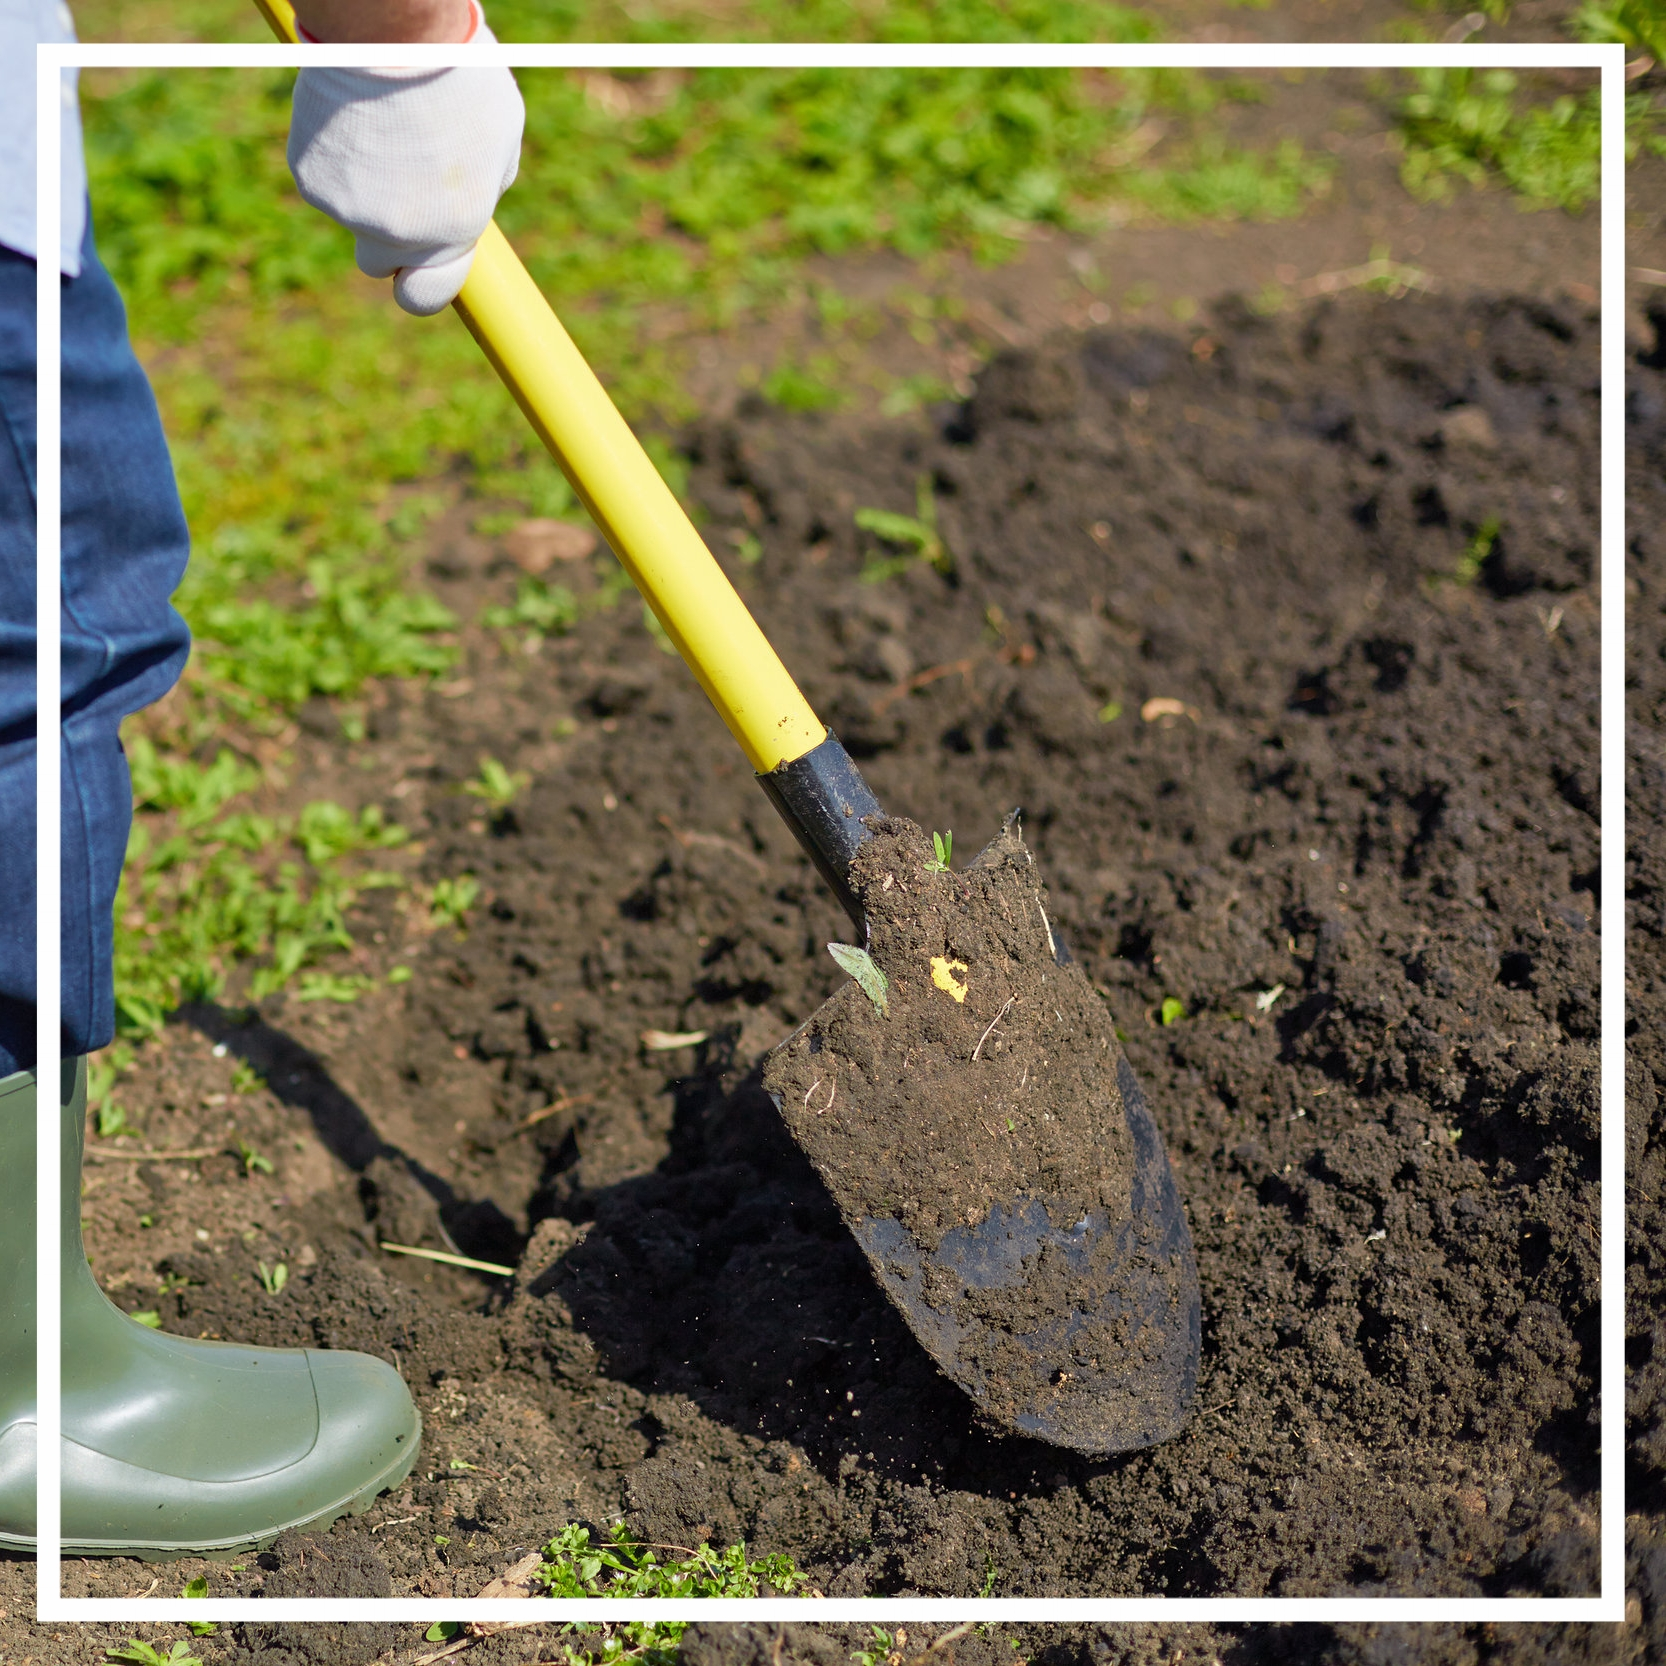 Residential landscape maintenance in Indianapolis, Carmel, Fishers, Westfield and Zionsville.